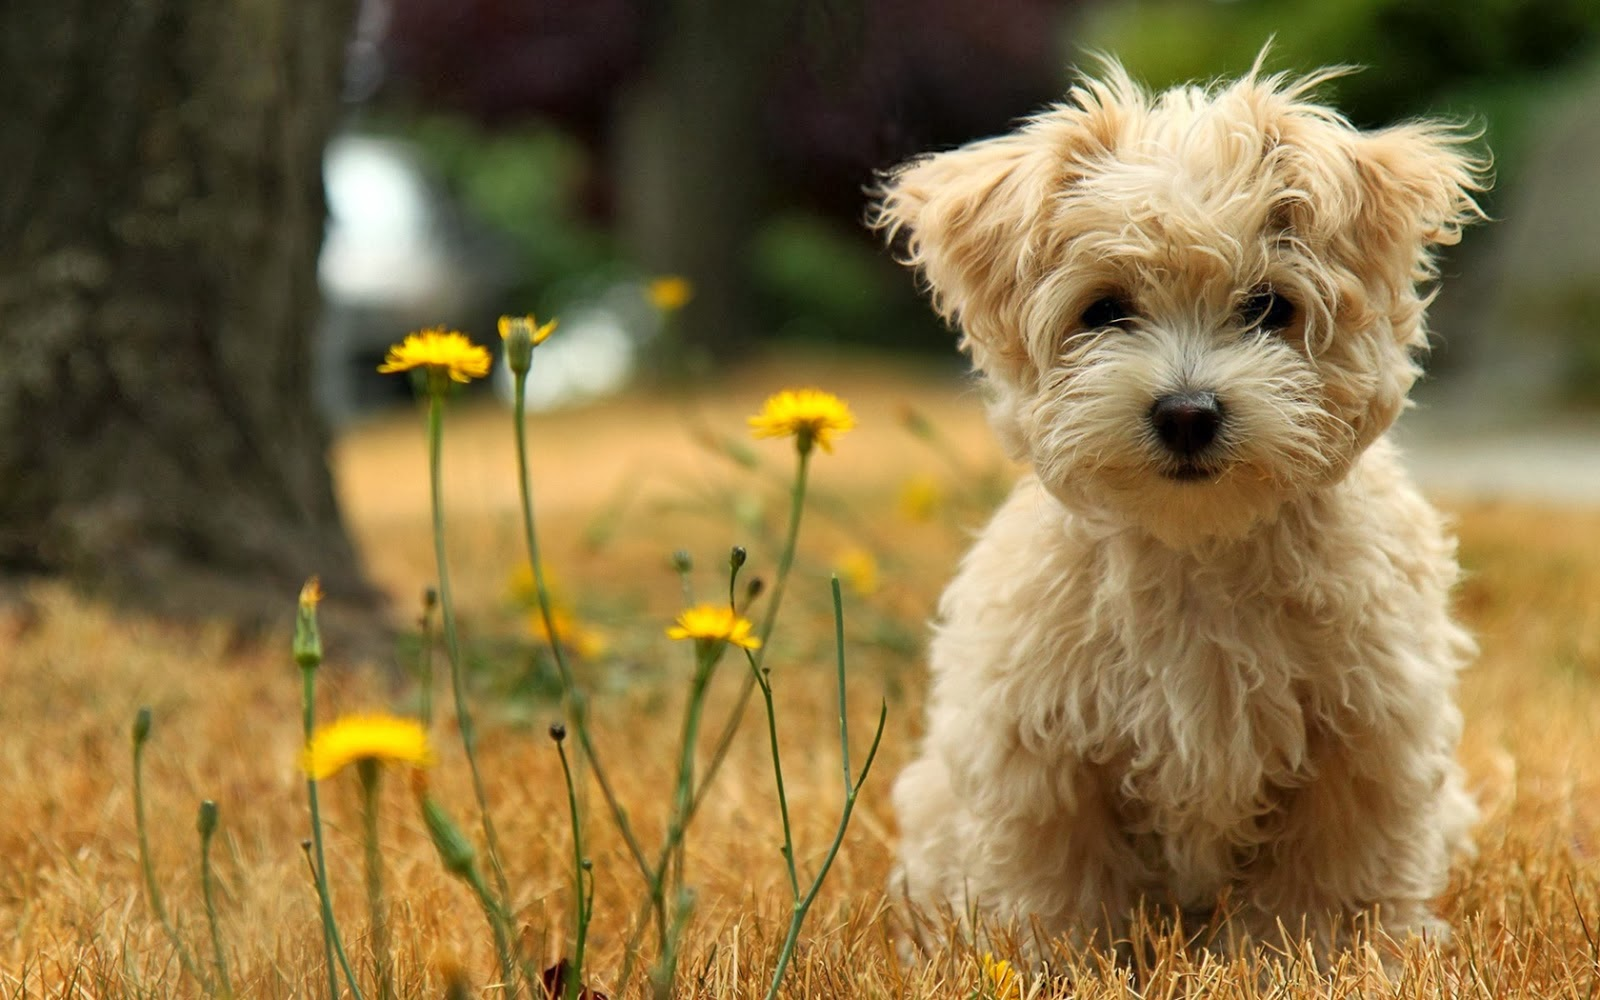 Puppies Hd Wallpapers Hd Wallpapers Blog HD Wallpapers Download Free Images Wallpaper [1000image.com]